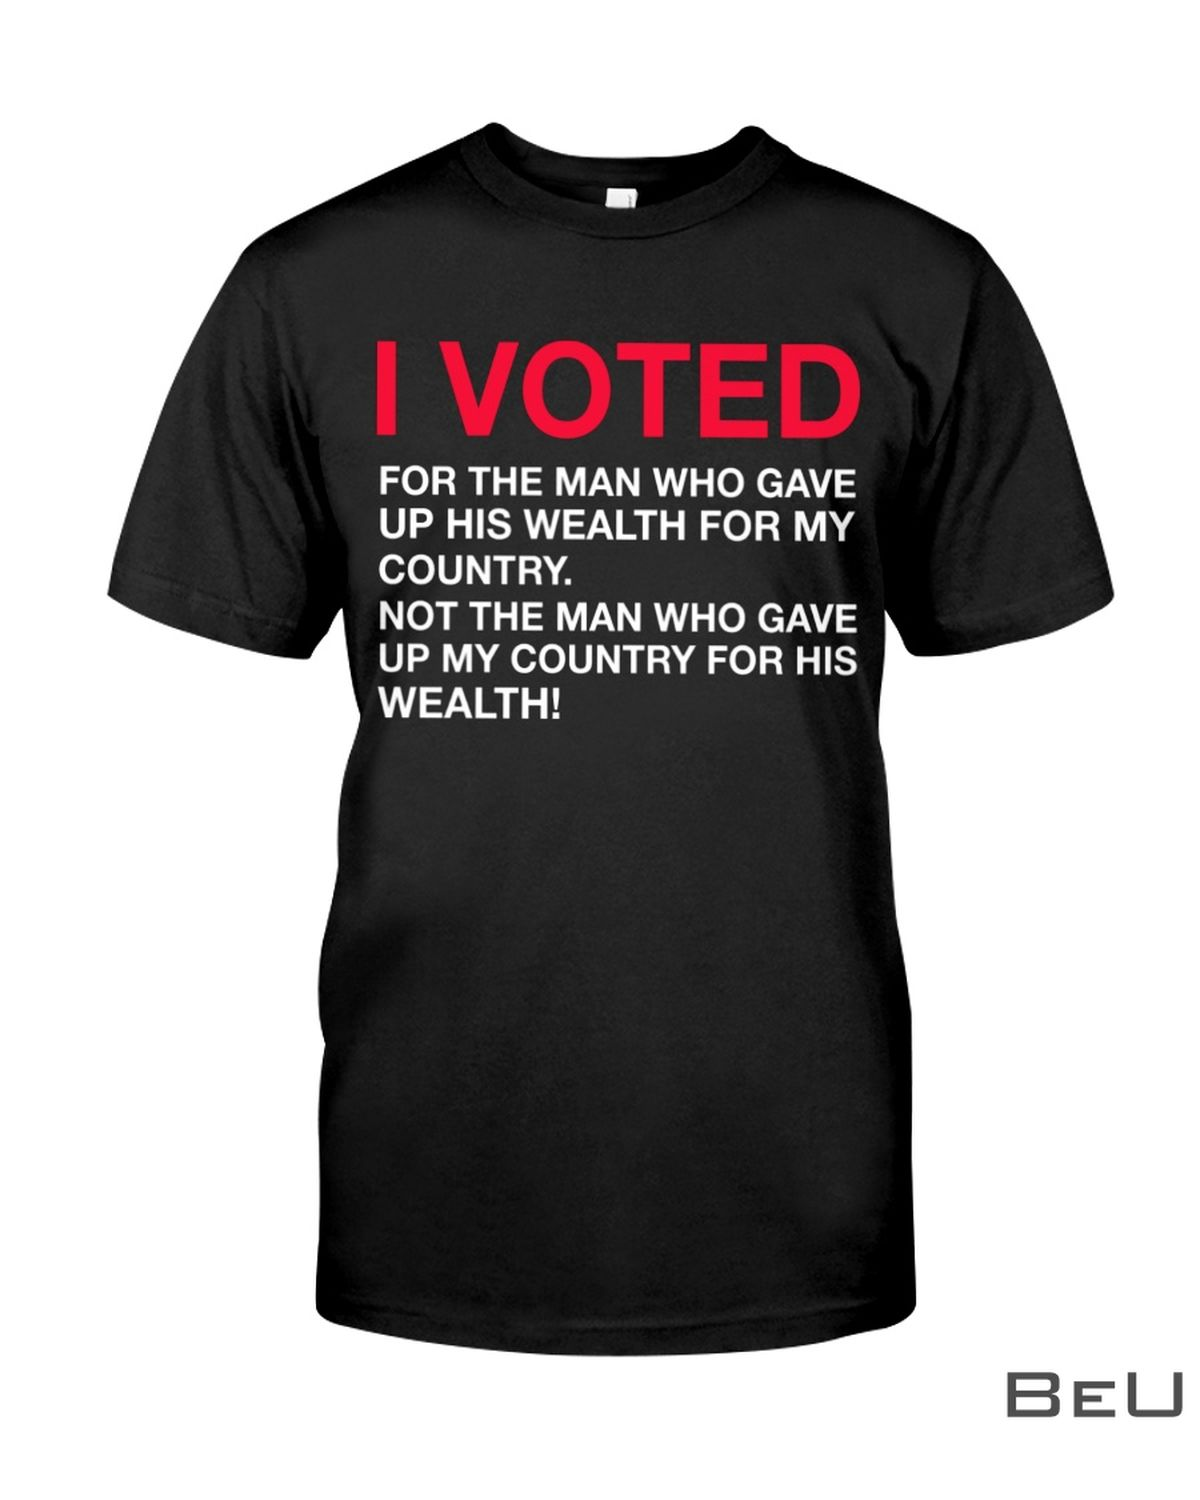 I Voted For The Man Who Gave Up His Wealth For My Country Shirt